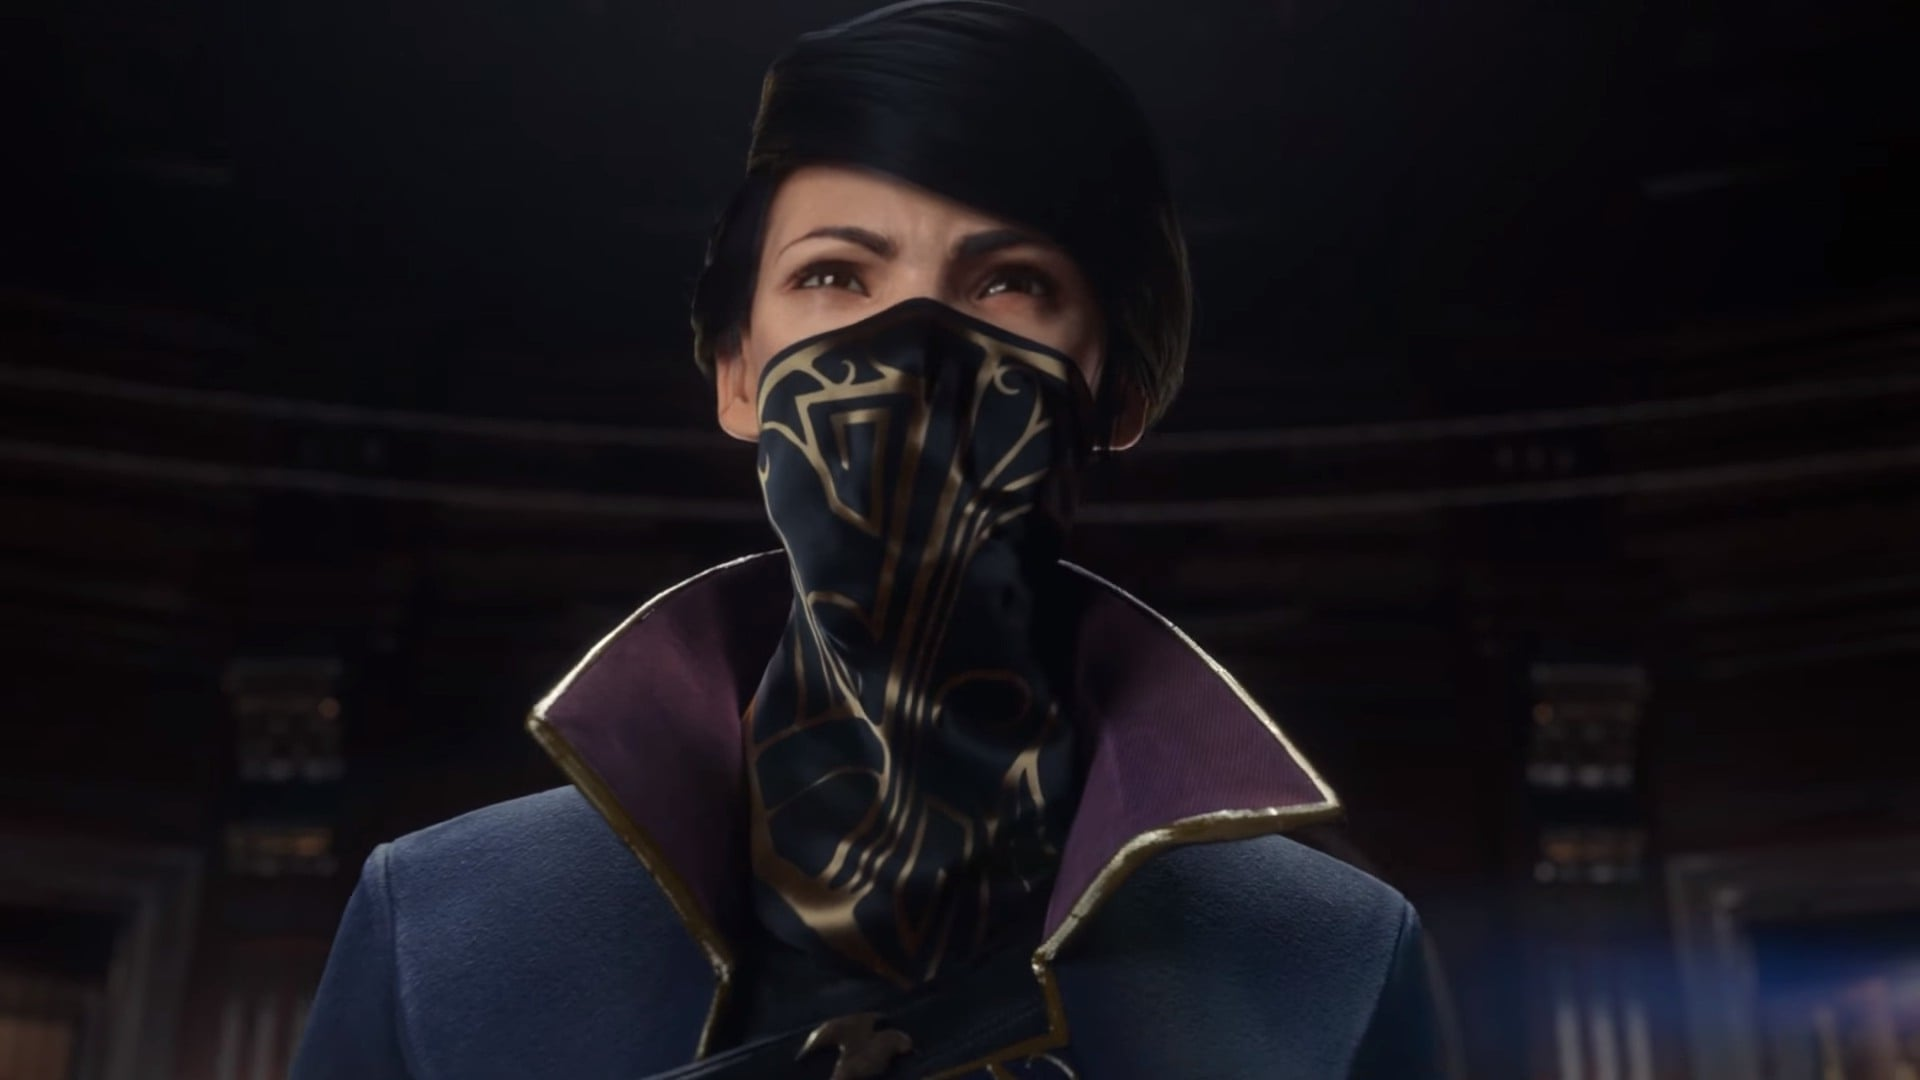 Abstract Girl Face Wallpaper 30 Dishonored 2 Wallpapers Hd Download